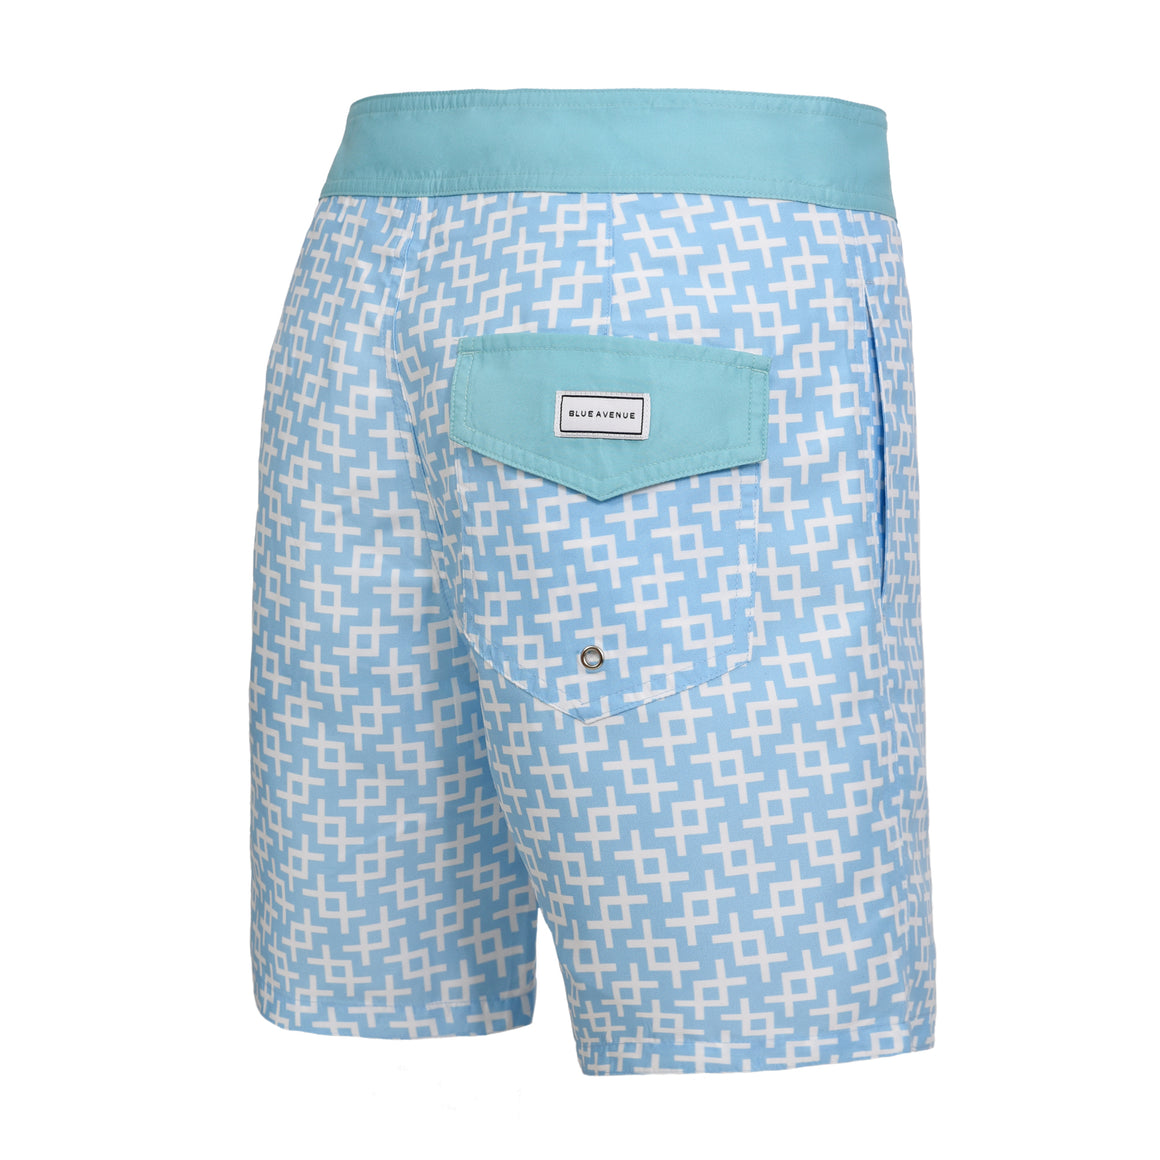 Barney Geometric Light Blue